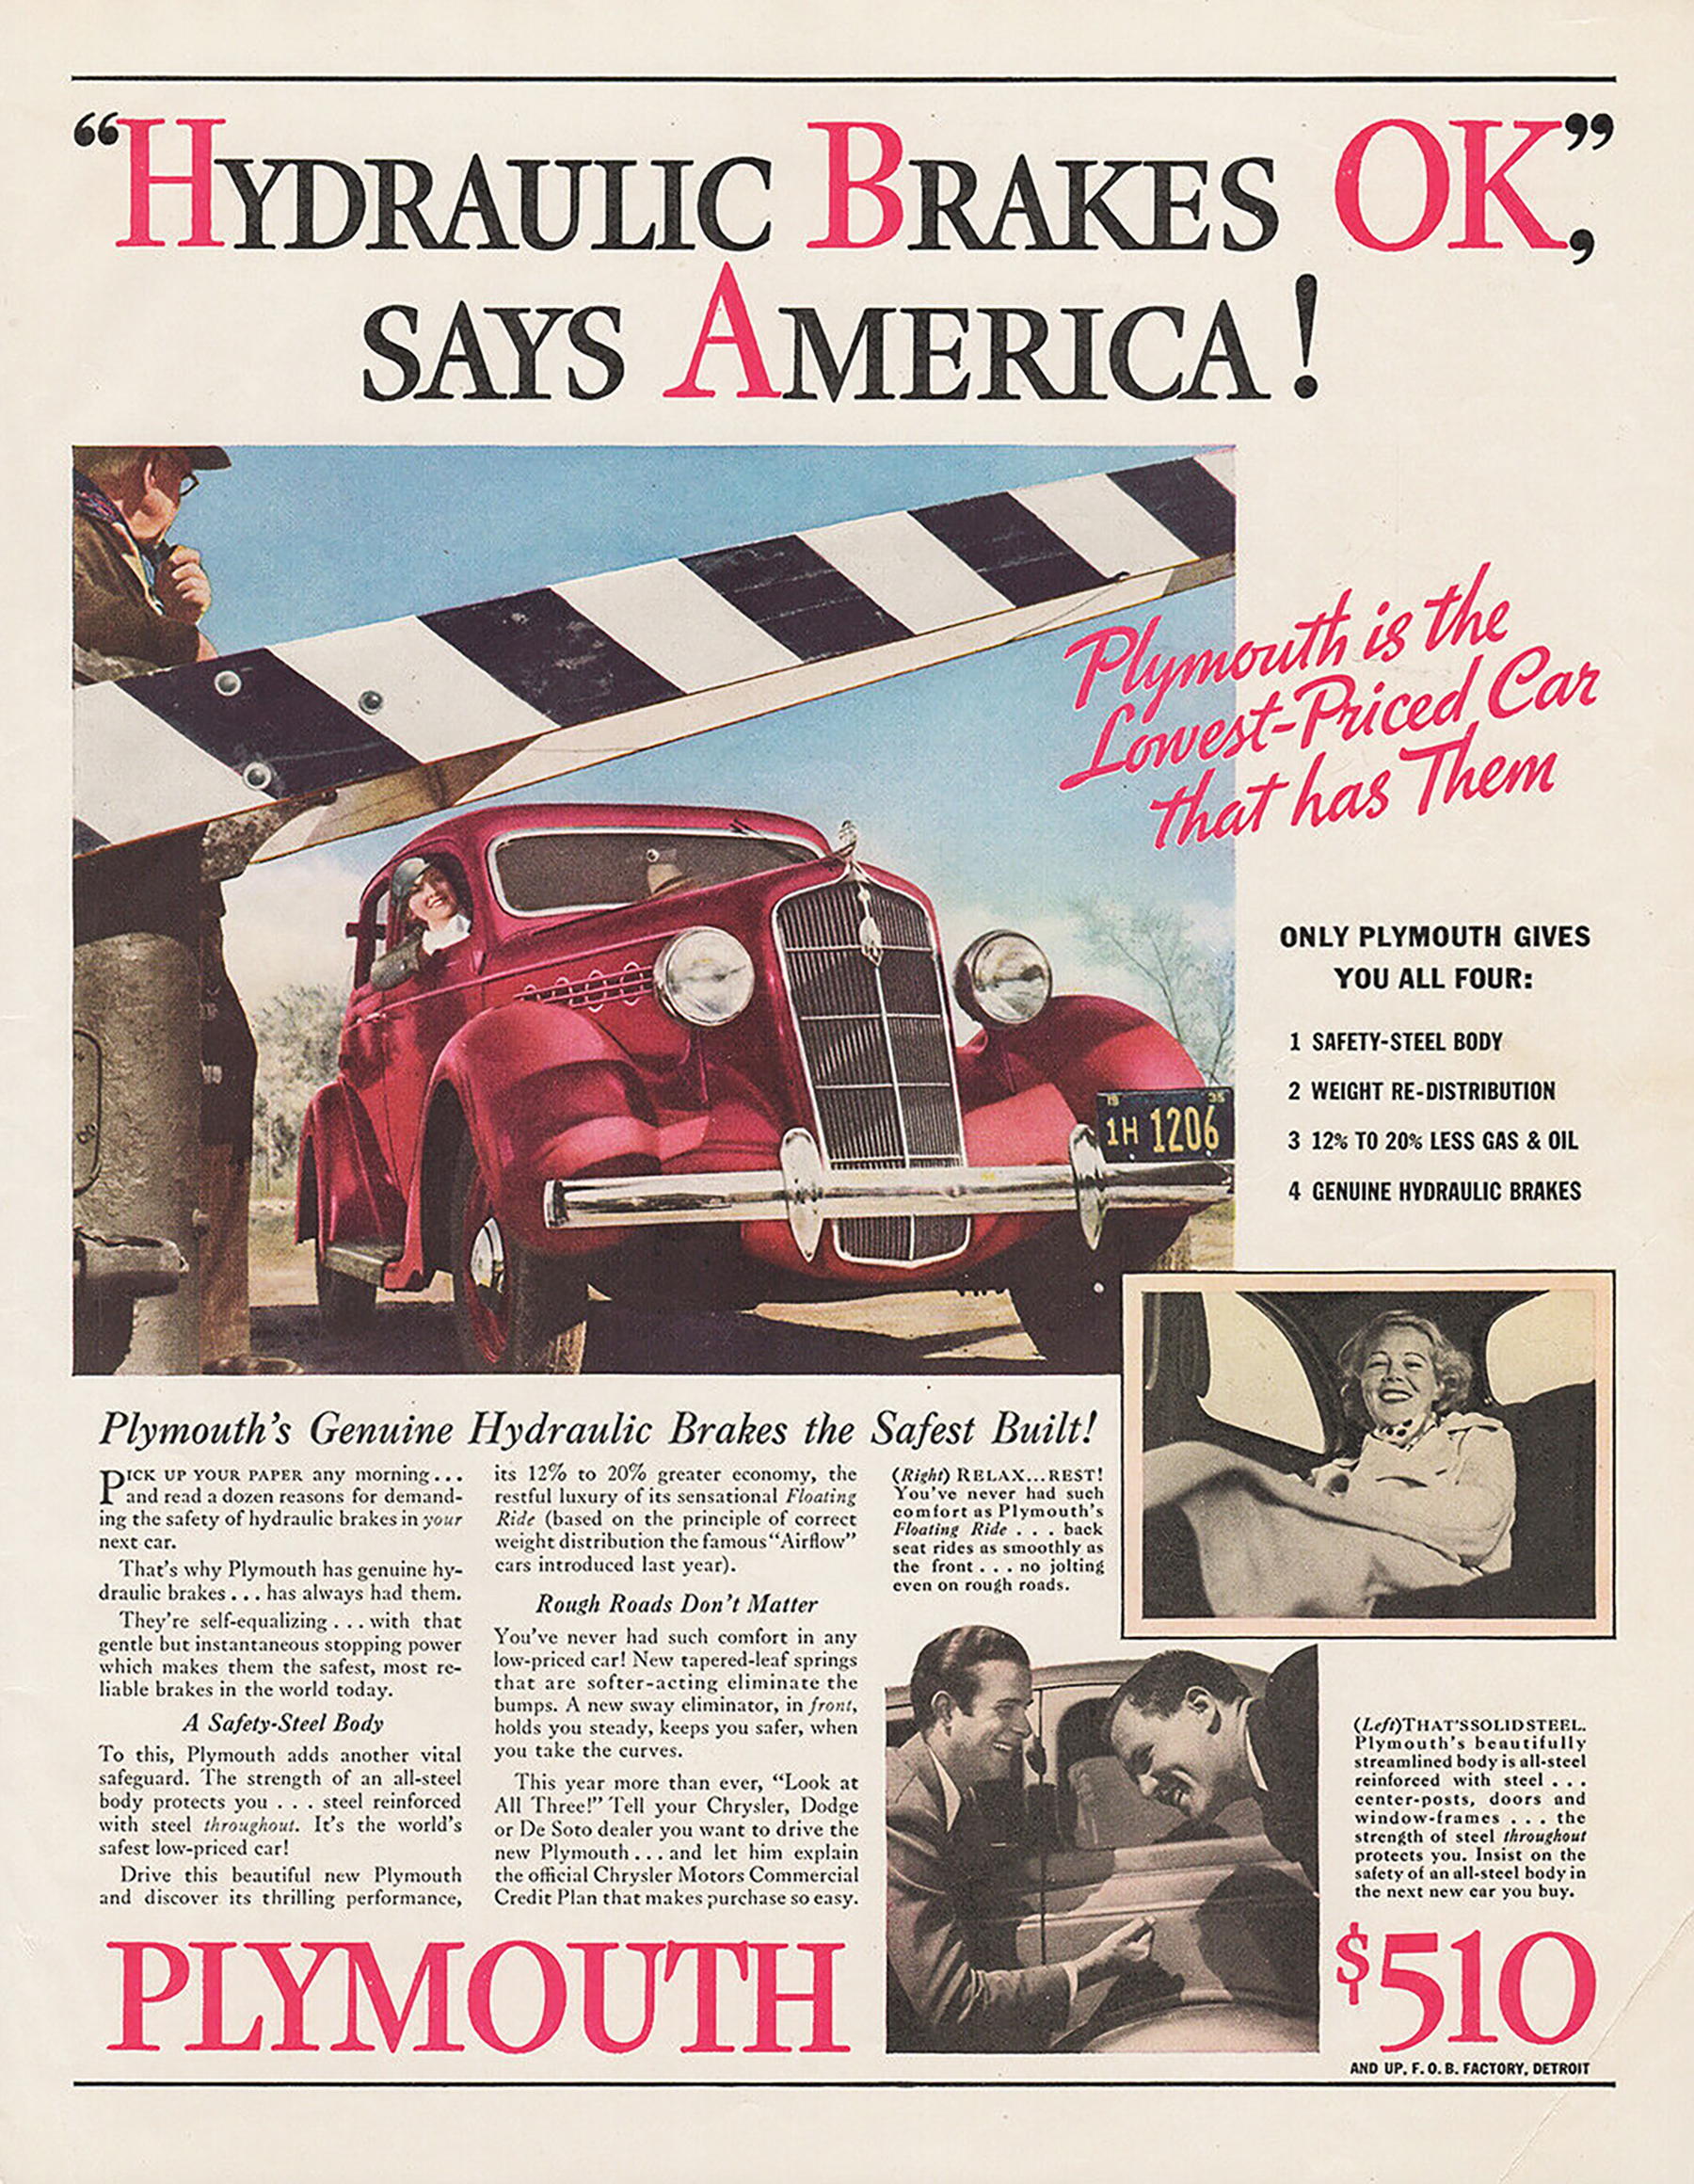 1935 Plymouth ad